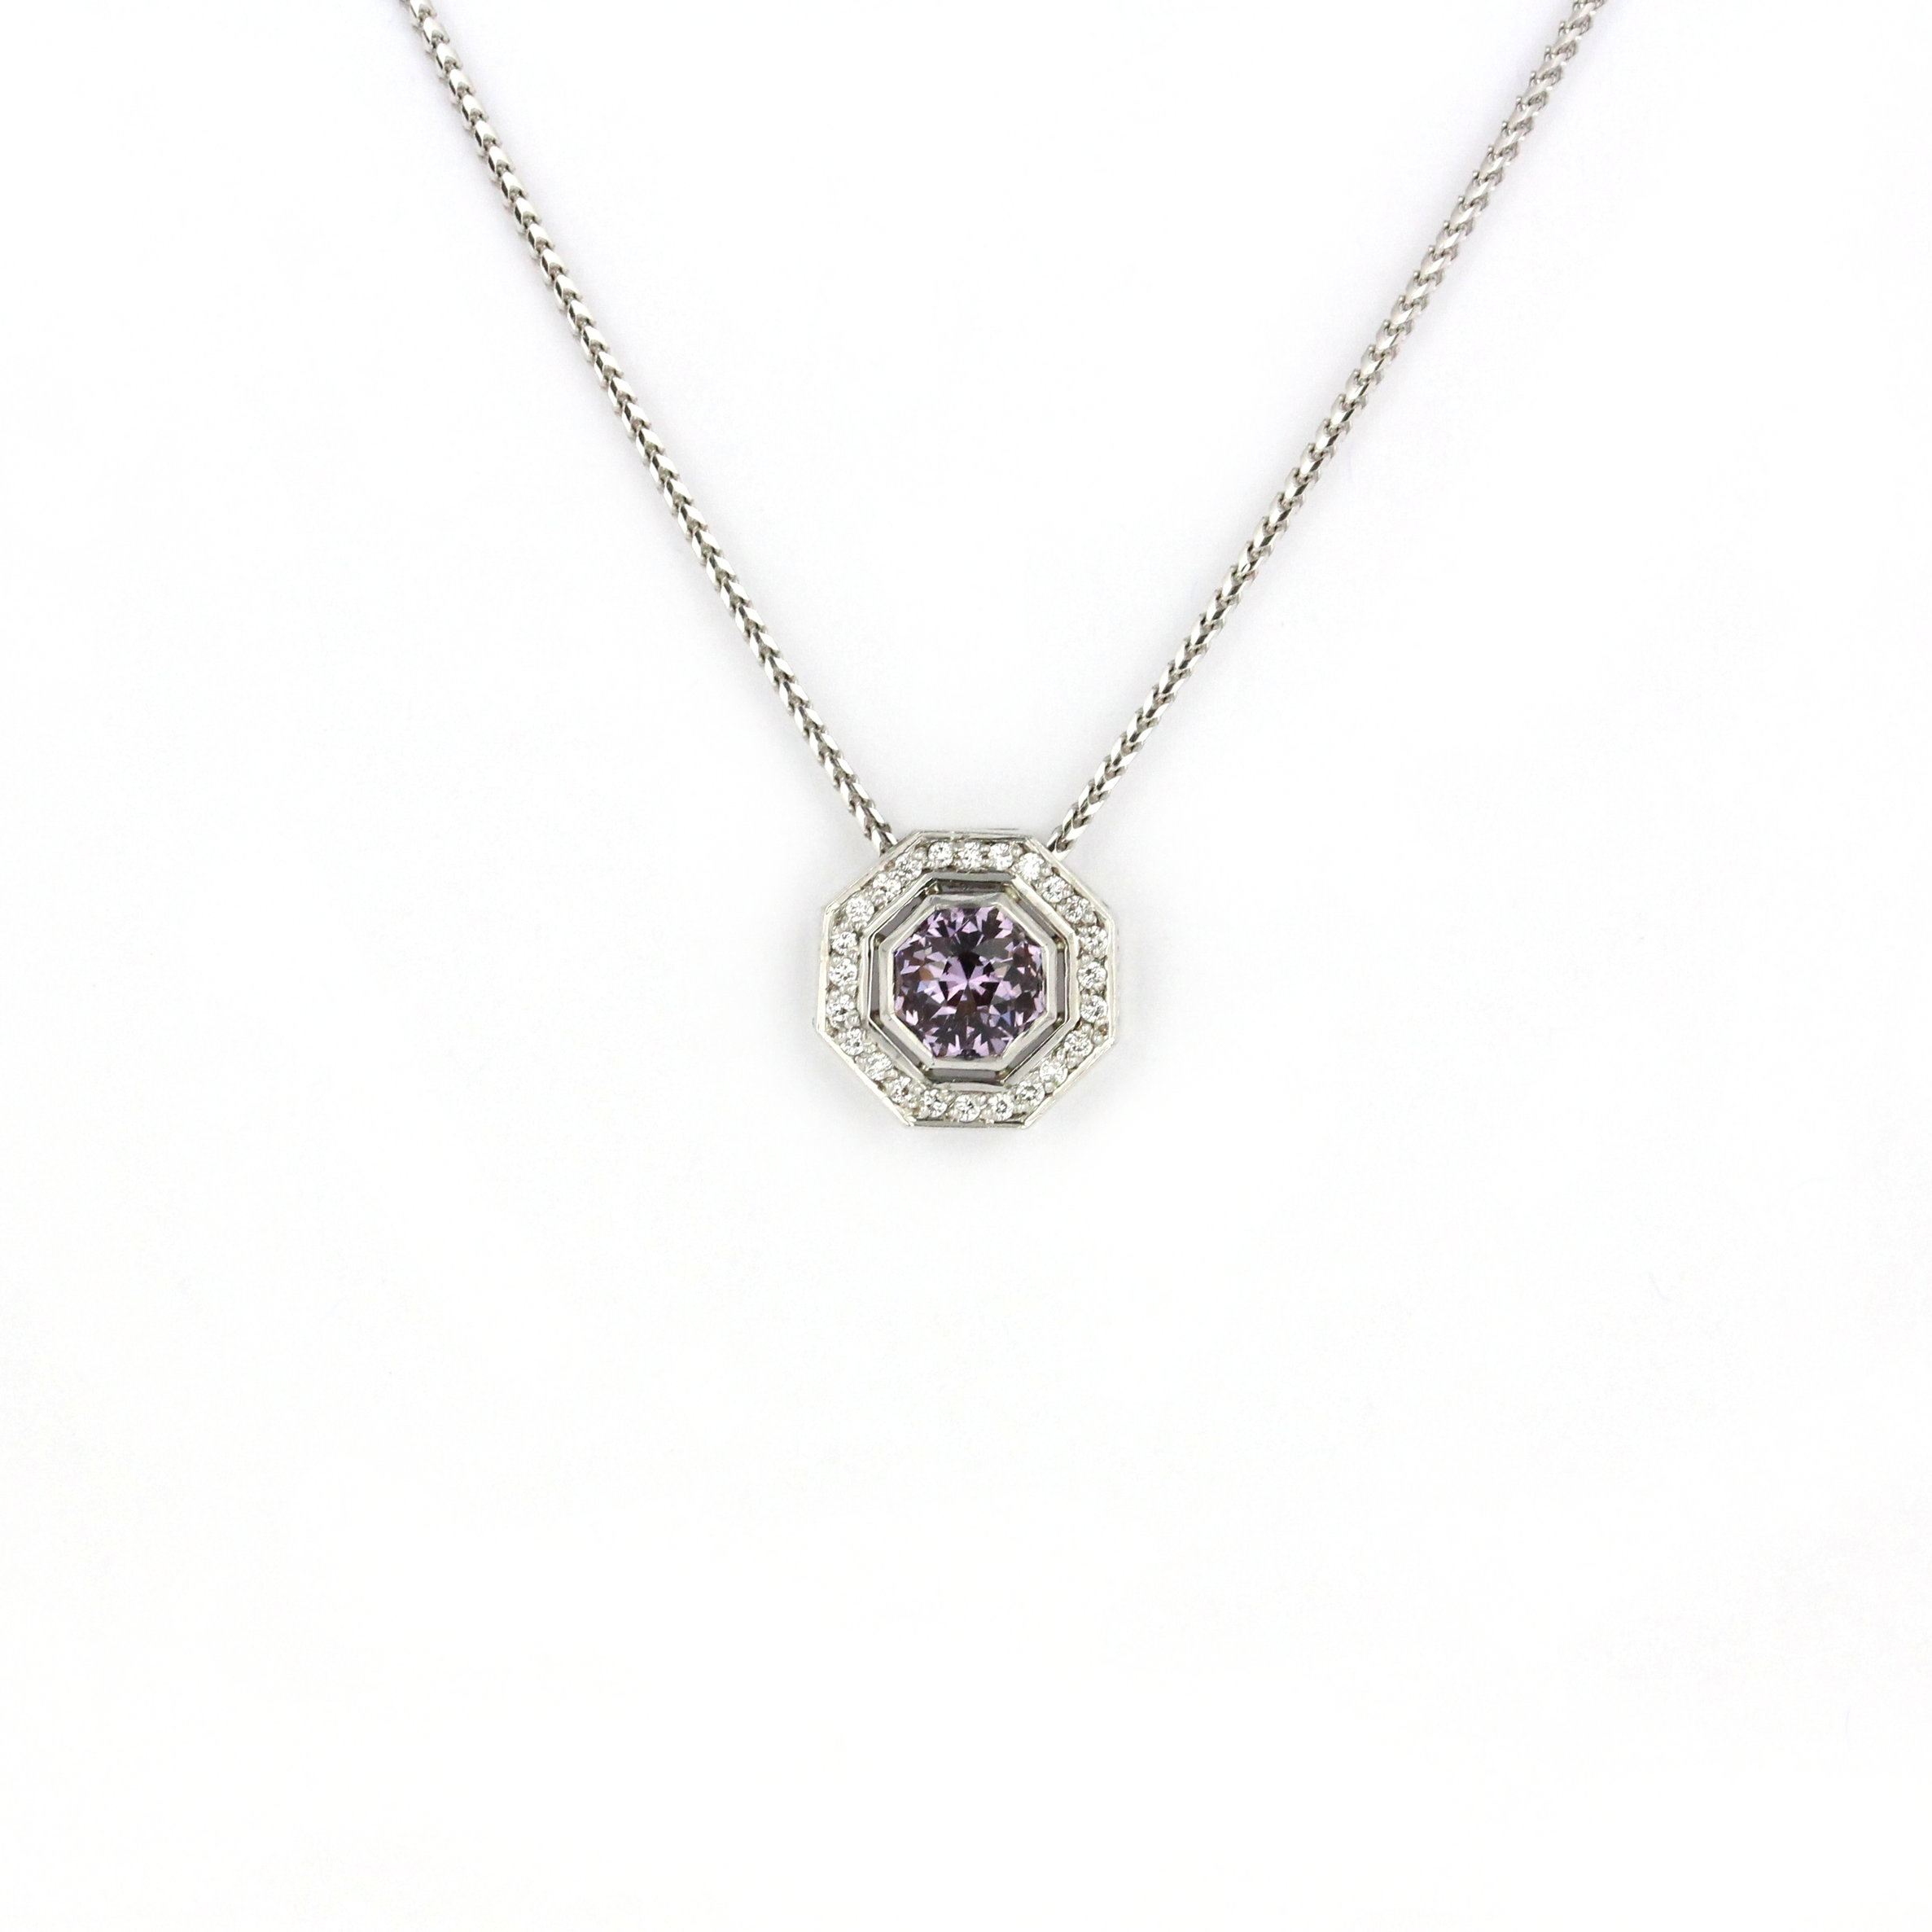 Hexagonal grey/purple spinel set in white gold surrounded by diamonds.